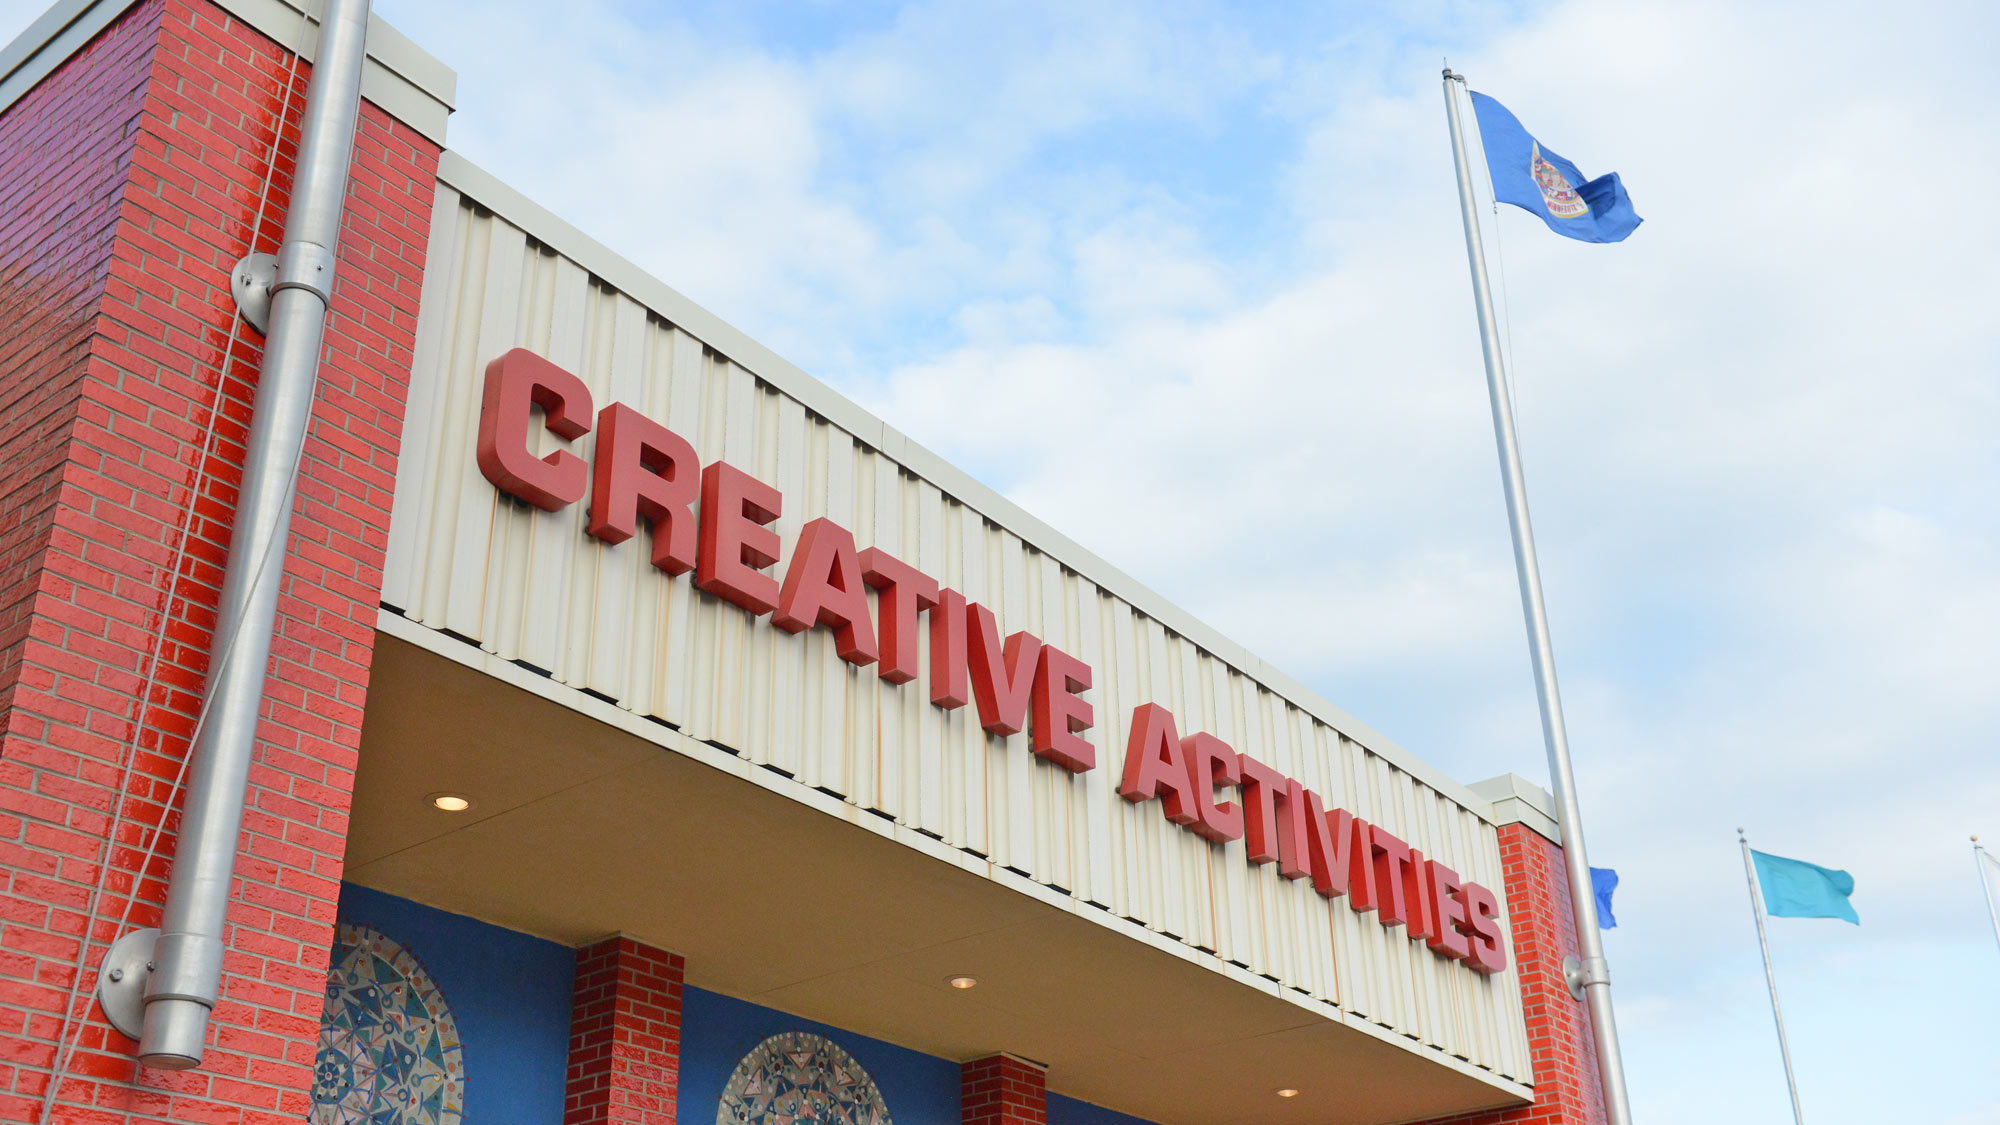 Creative Activities Building